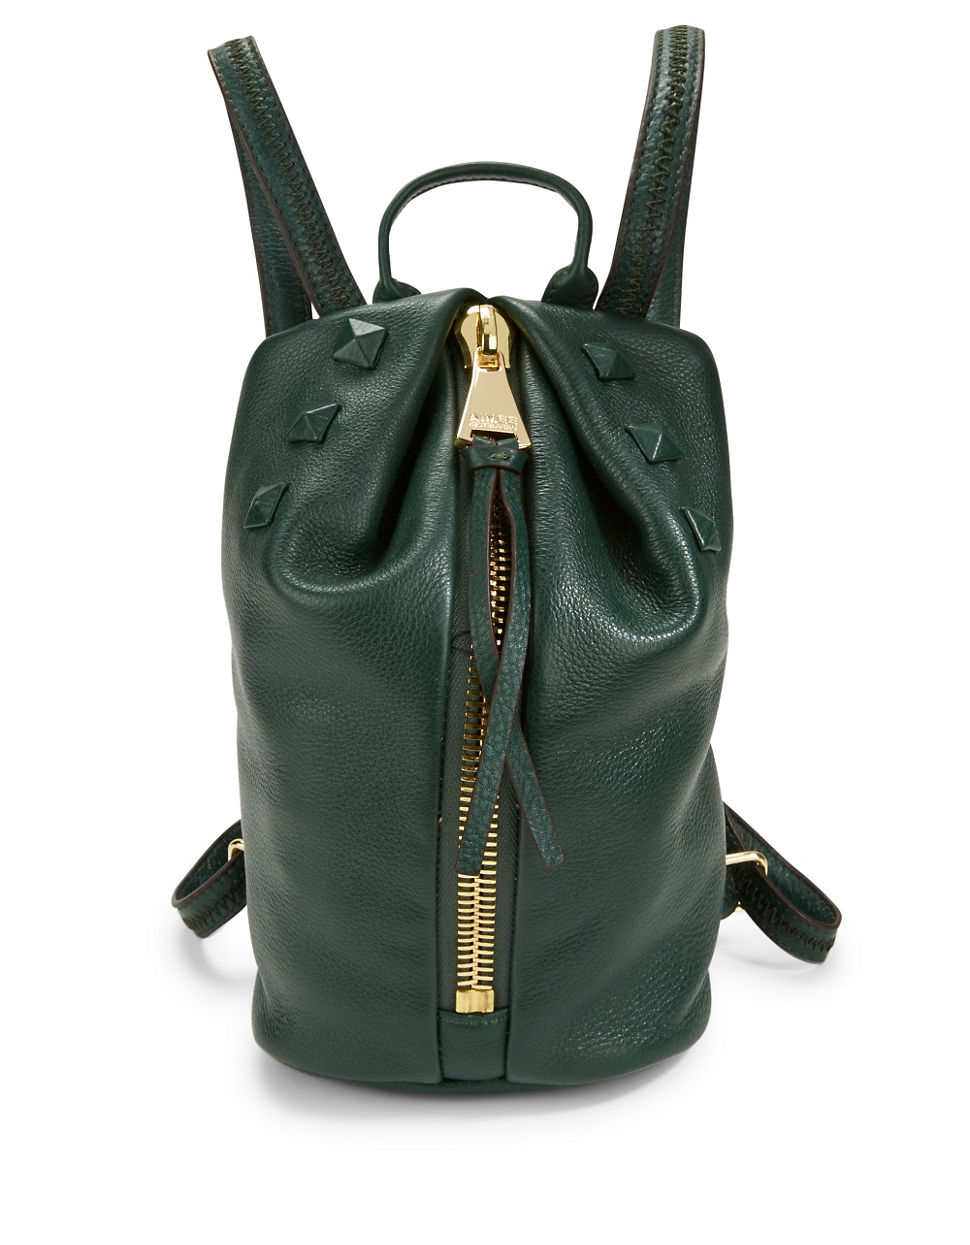 Aimee kestenberg Tamitha Studded Leather Backpack in Green | Lyst